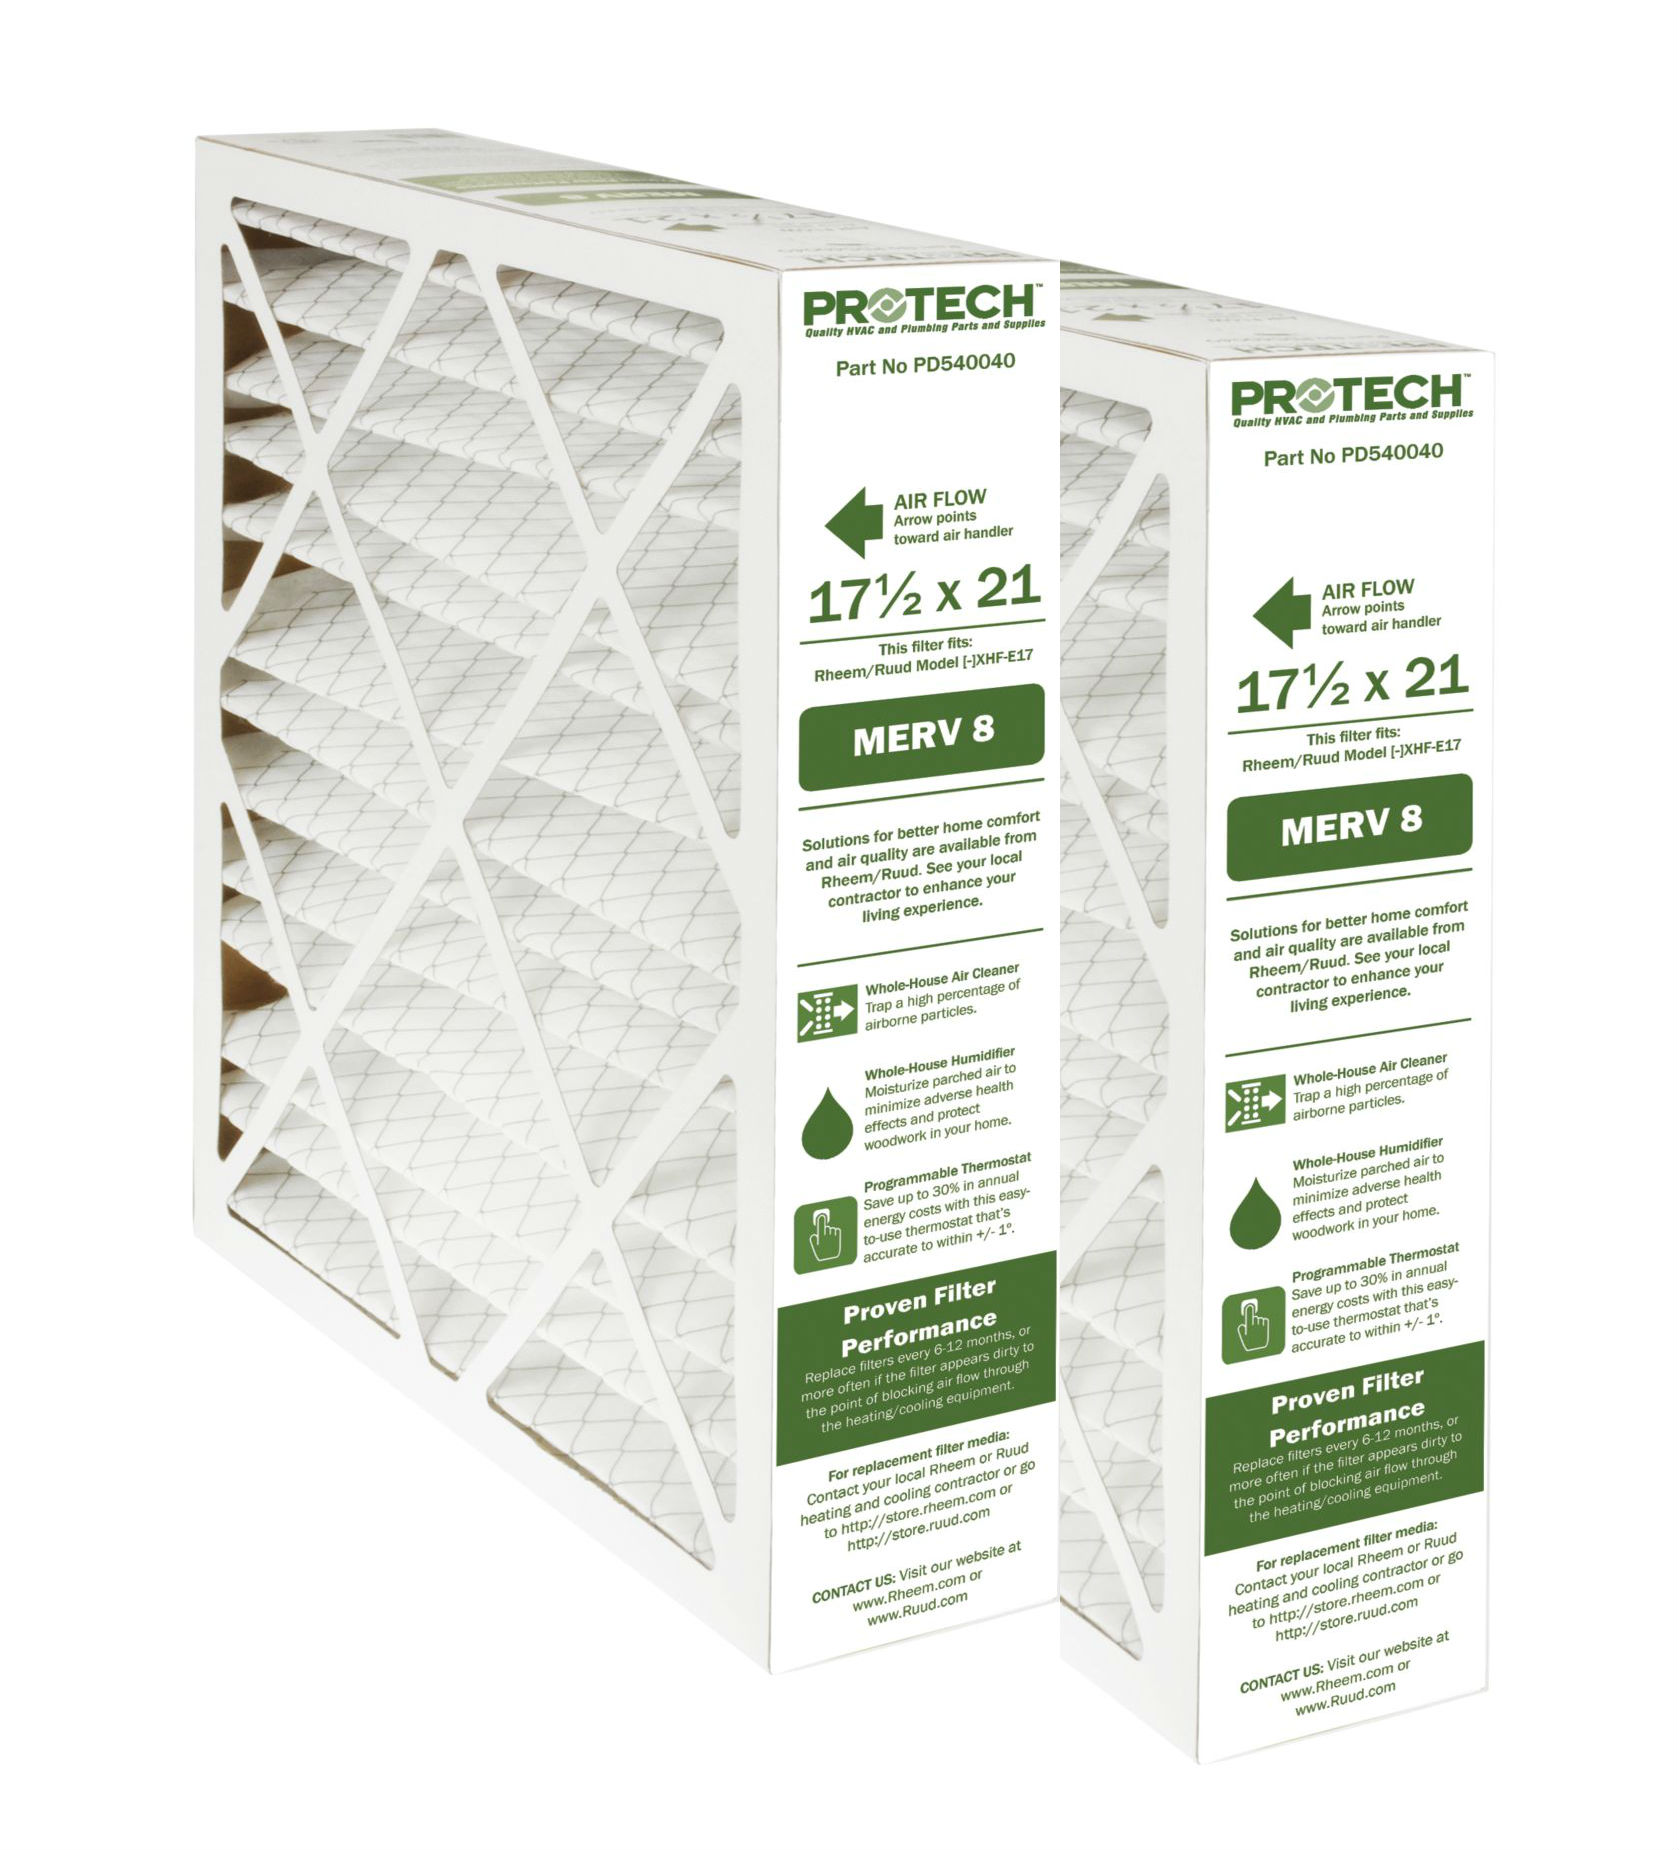 Protech MERV 8 Rheem-Ruud Replacement Filter 540040 2 Pk